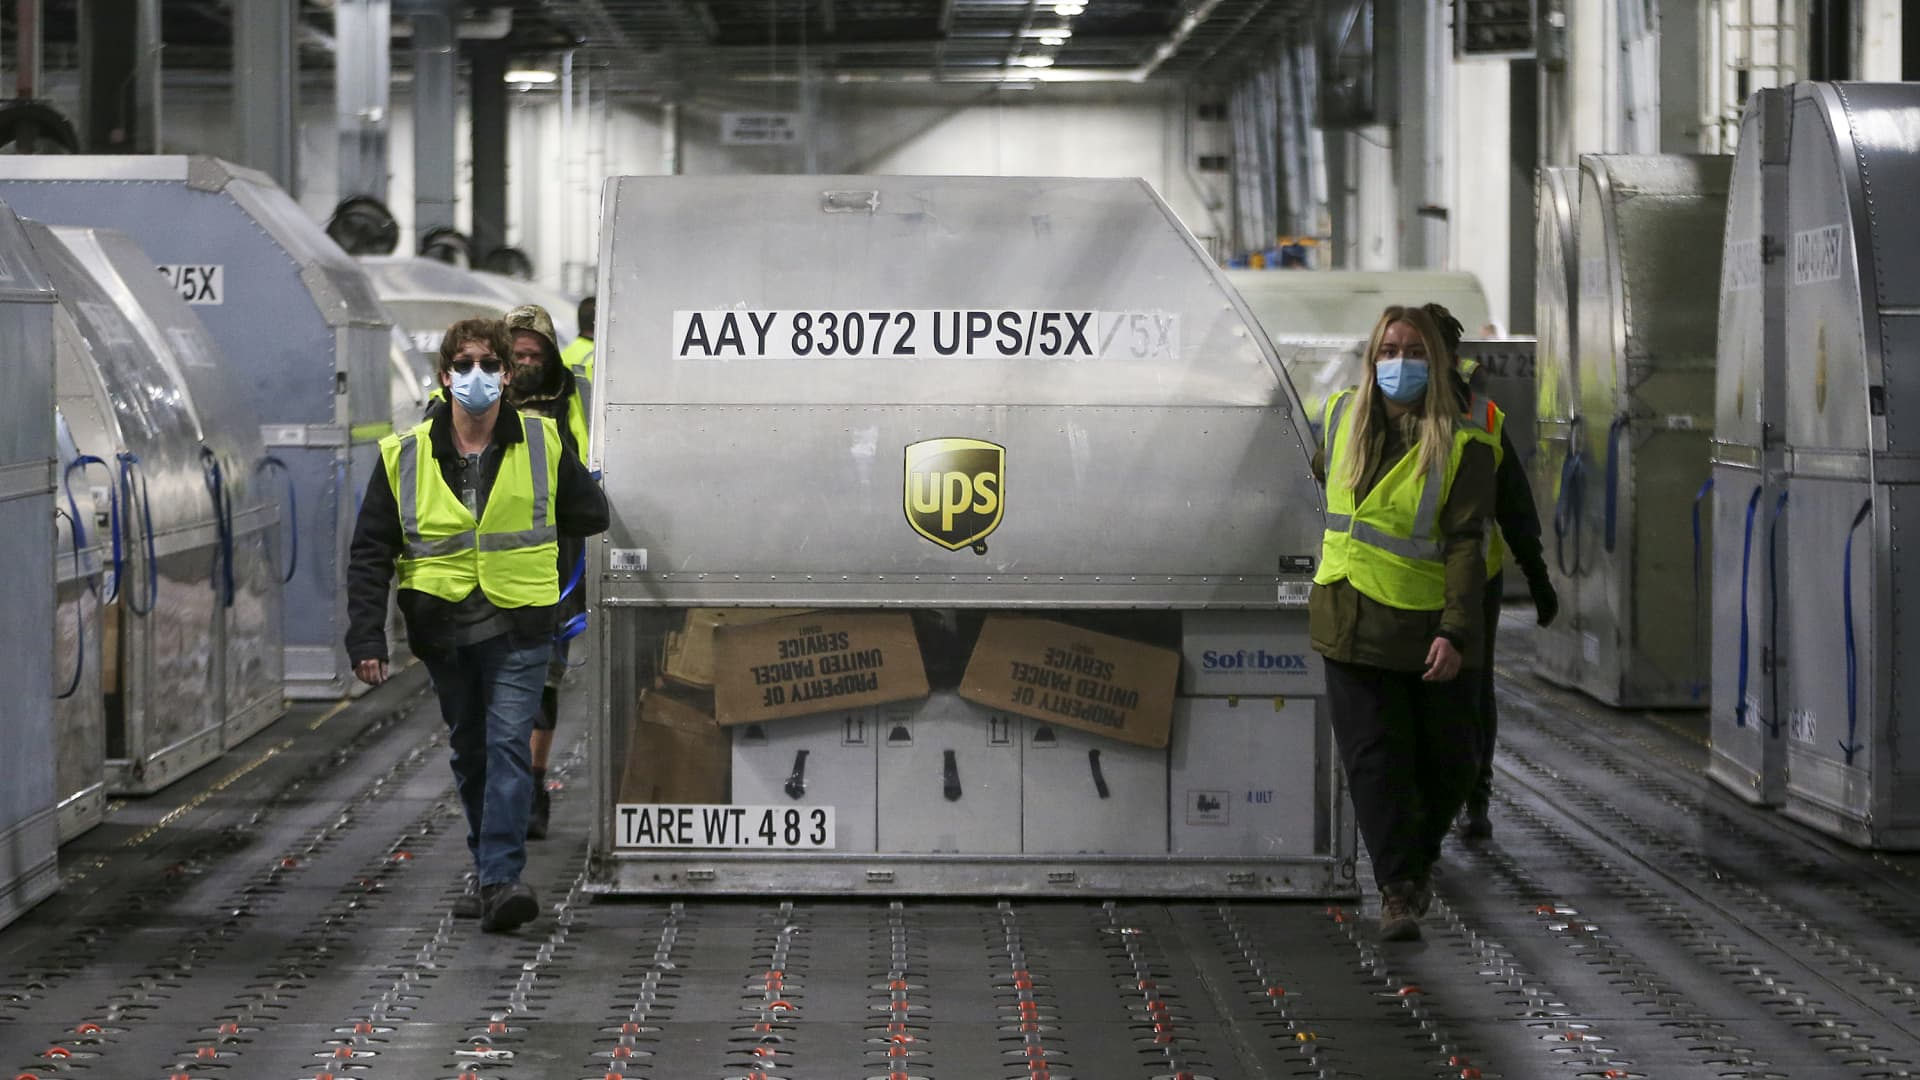 UPS employees move one of two shipping containers containing the first shipments of the Pfizer and BioNTech Covid vaccine inside a sorting facility at UPS Worldport on December 13, 2020 in Louisville, Kentucky.